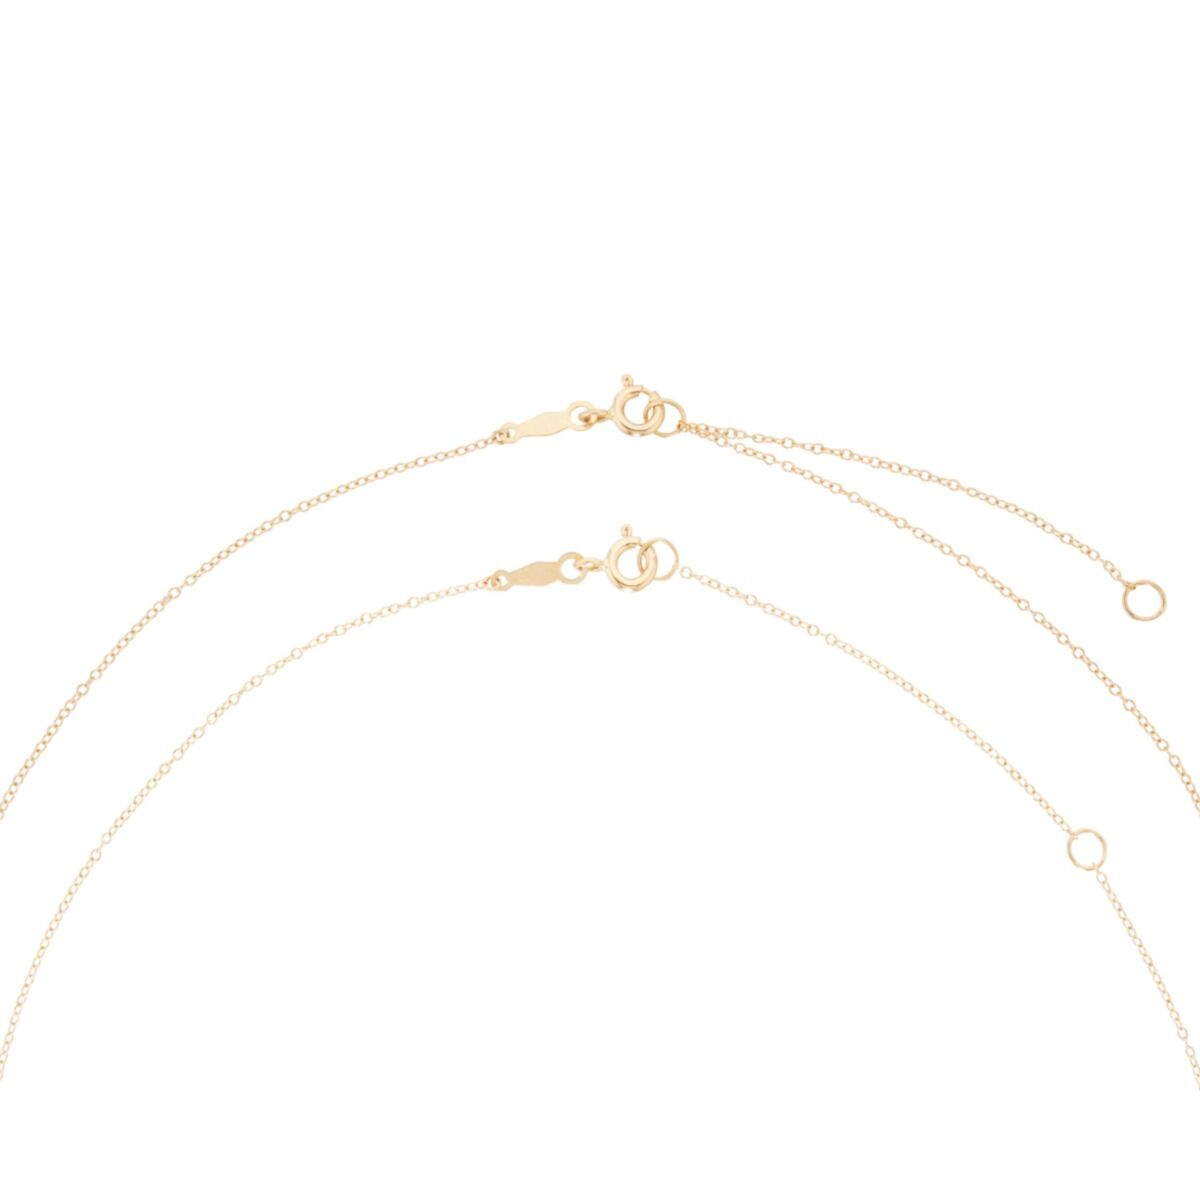 Dewdrop Collar, yellow gold image